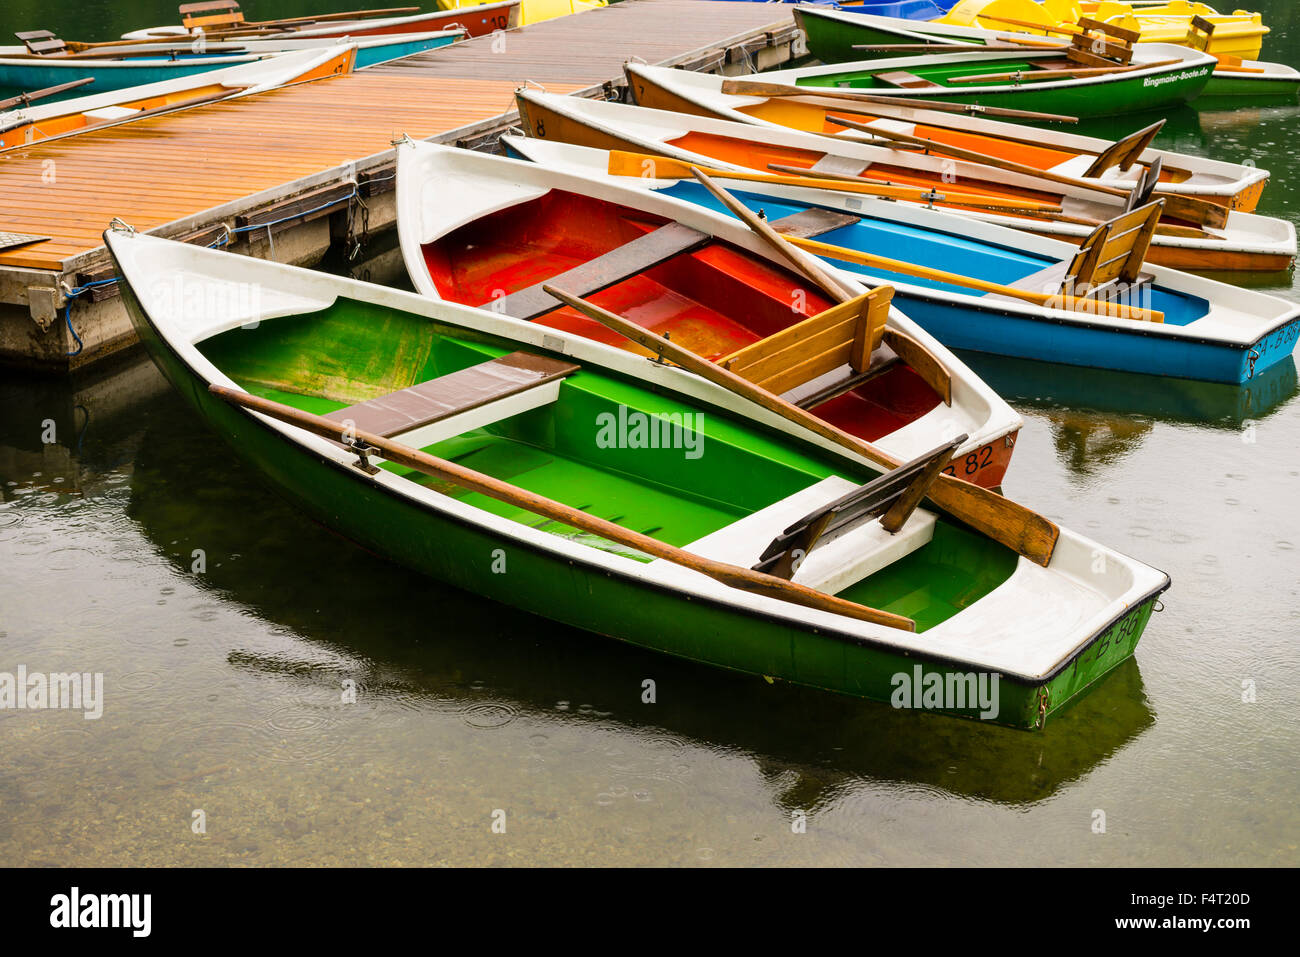 Allgäu, Bavaria, mountain lake, boats, boat rental company, Germany, Europe, Freiberg lake, body of water, - Stock Image